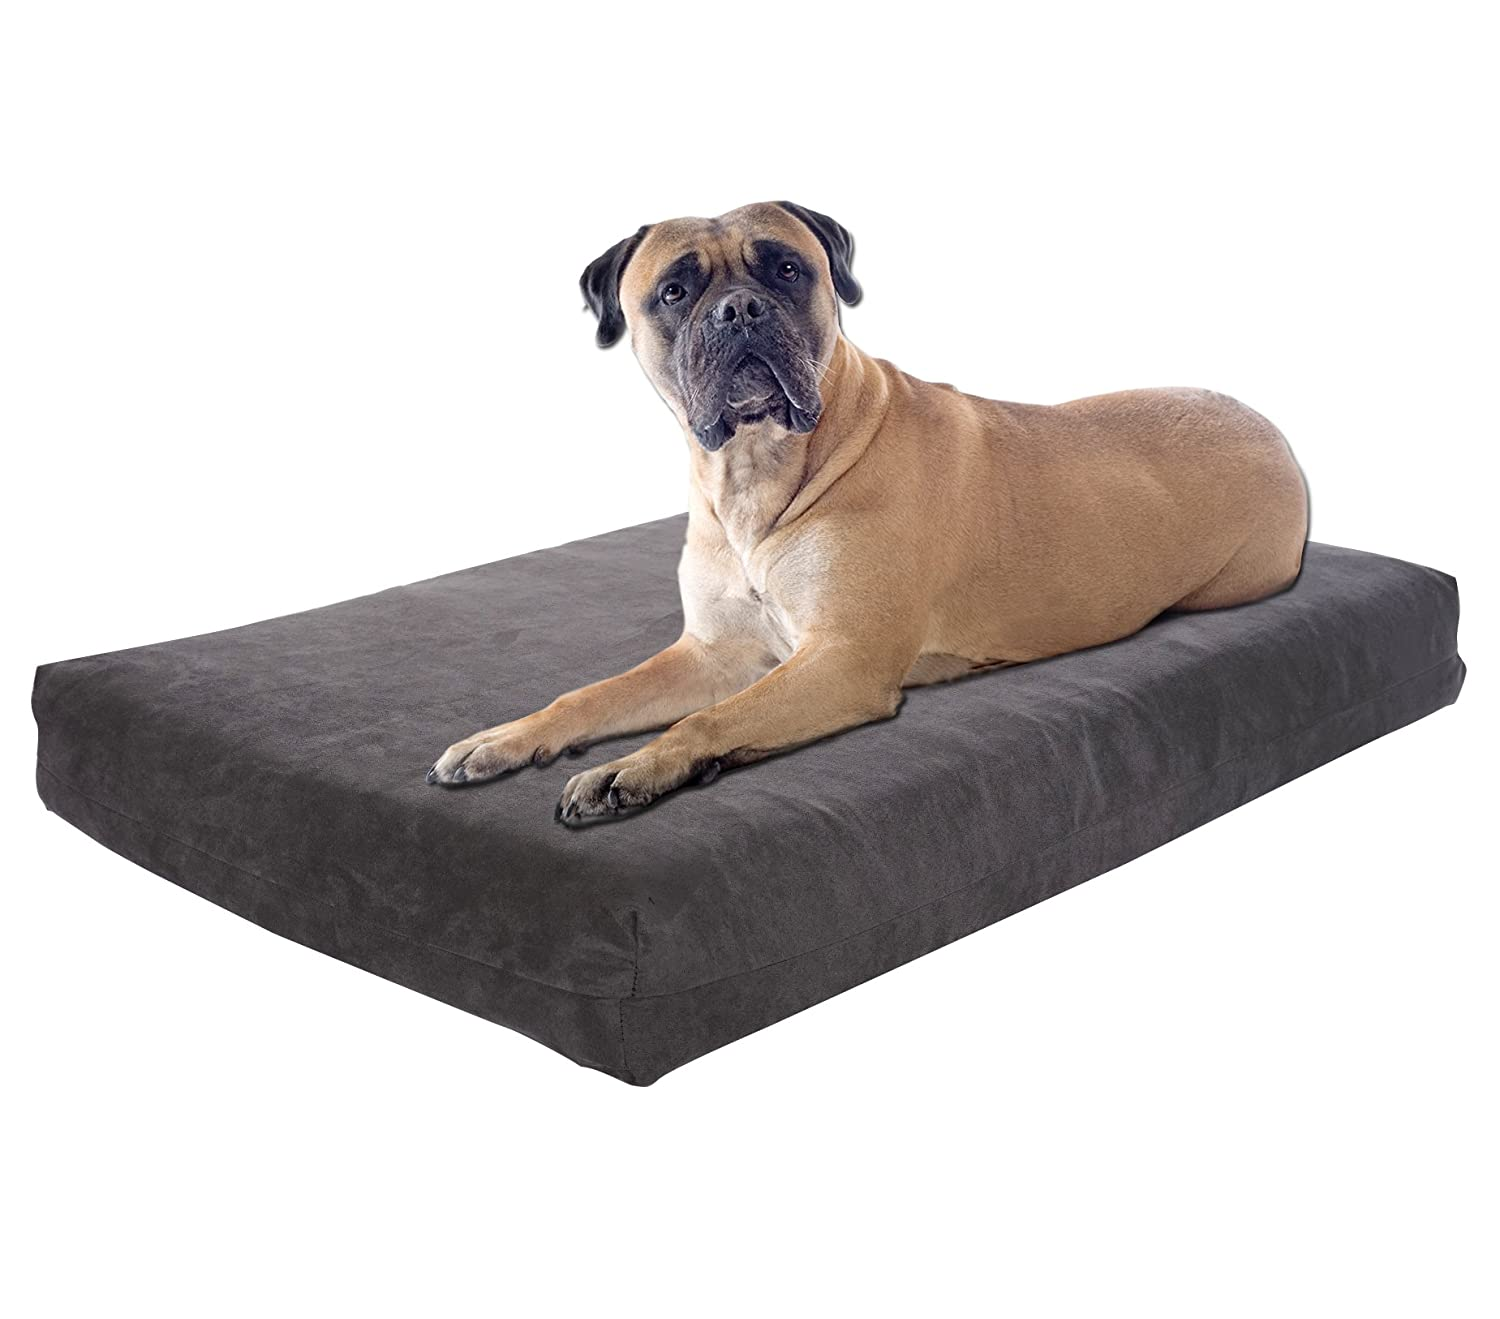 Pet Support Systems Orthopedic Gel Memory Foam Dog Beds – Eco Friendly, Hypoallergenic and Made in The USA, Supreme Luxury Comfort and Care for Dogs with Removable and Washable Cover